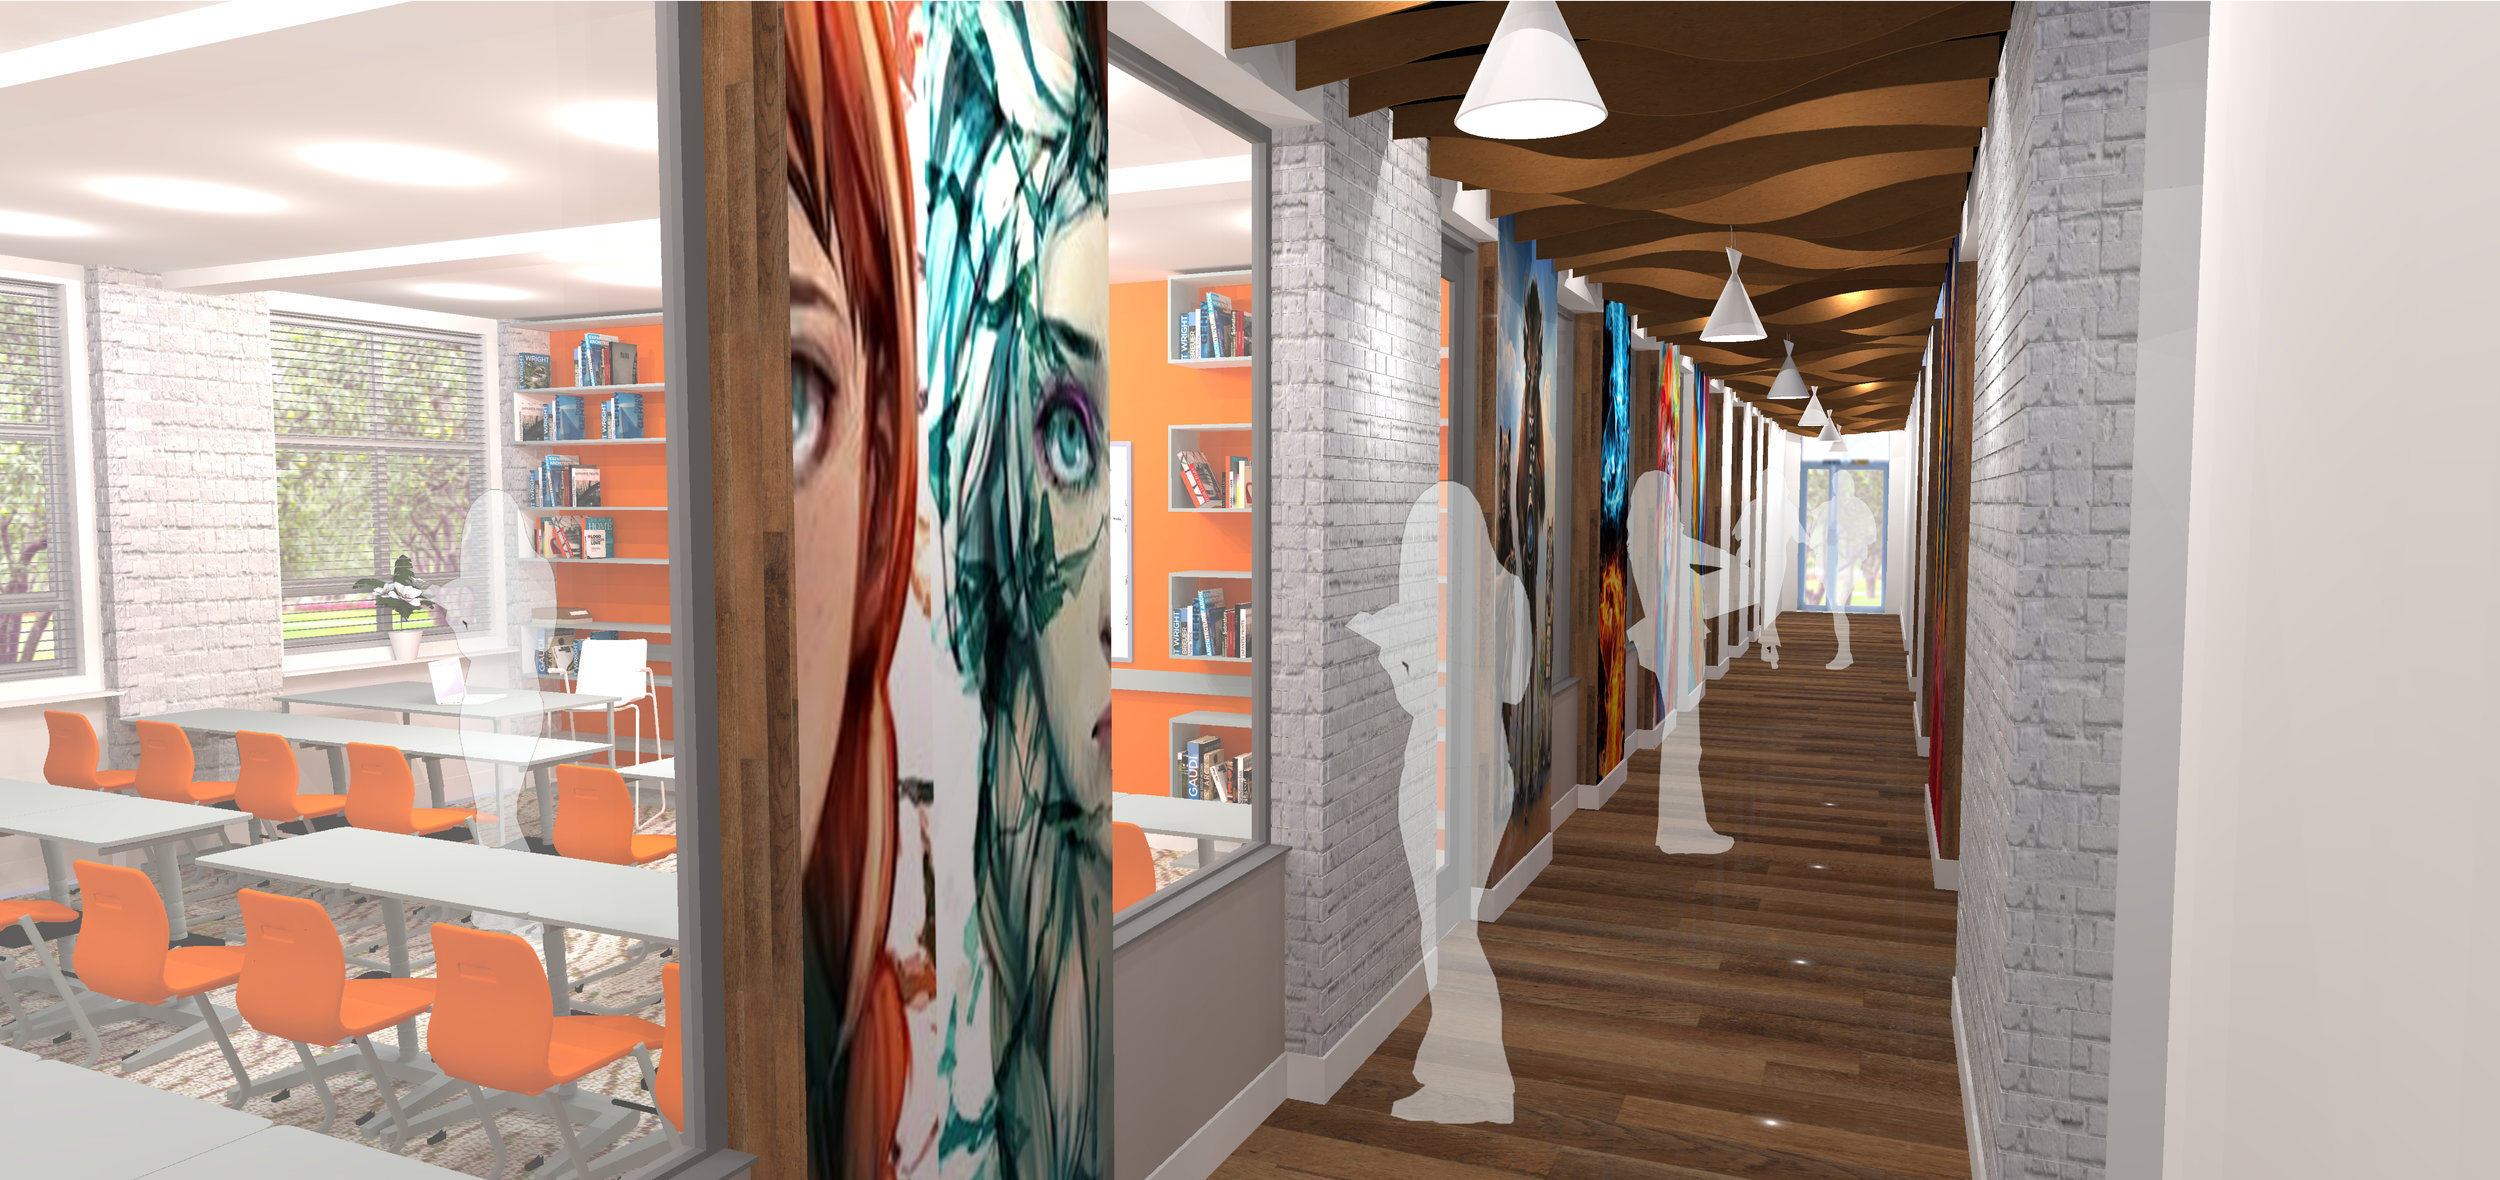 3d image of the proposals showing how light and colour would be brough into the previously dark corridors